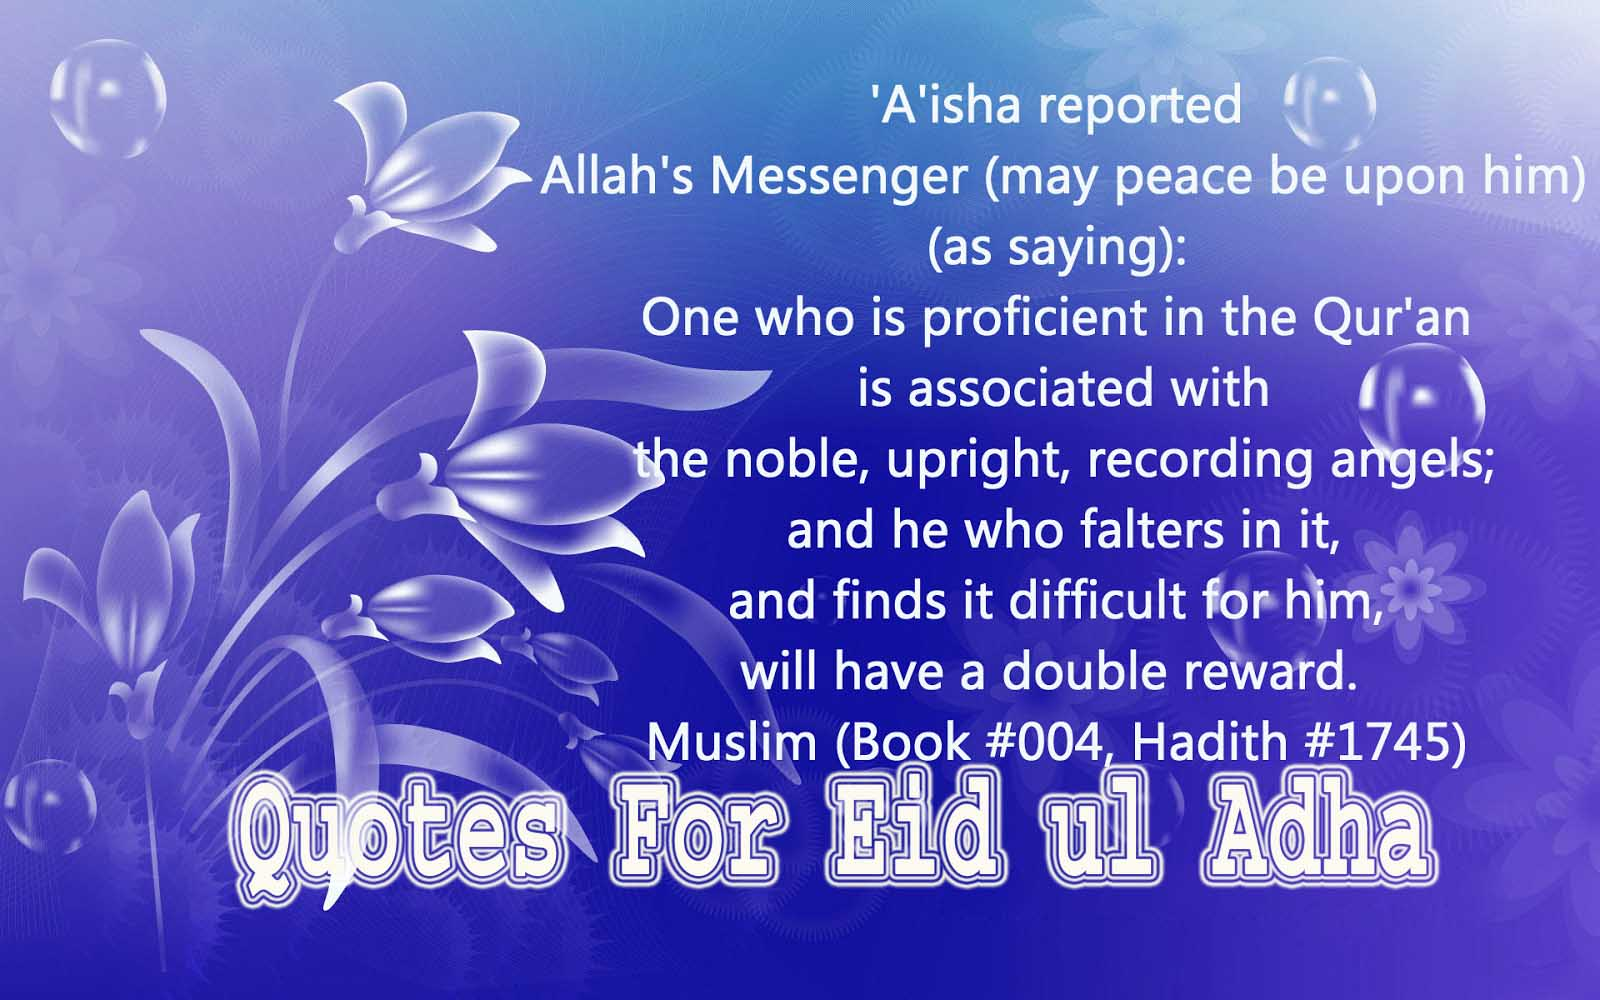 Quotes For Eid ul Adha